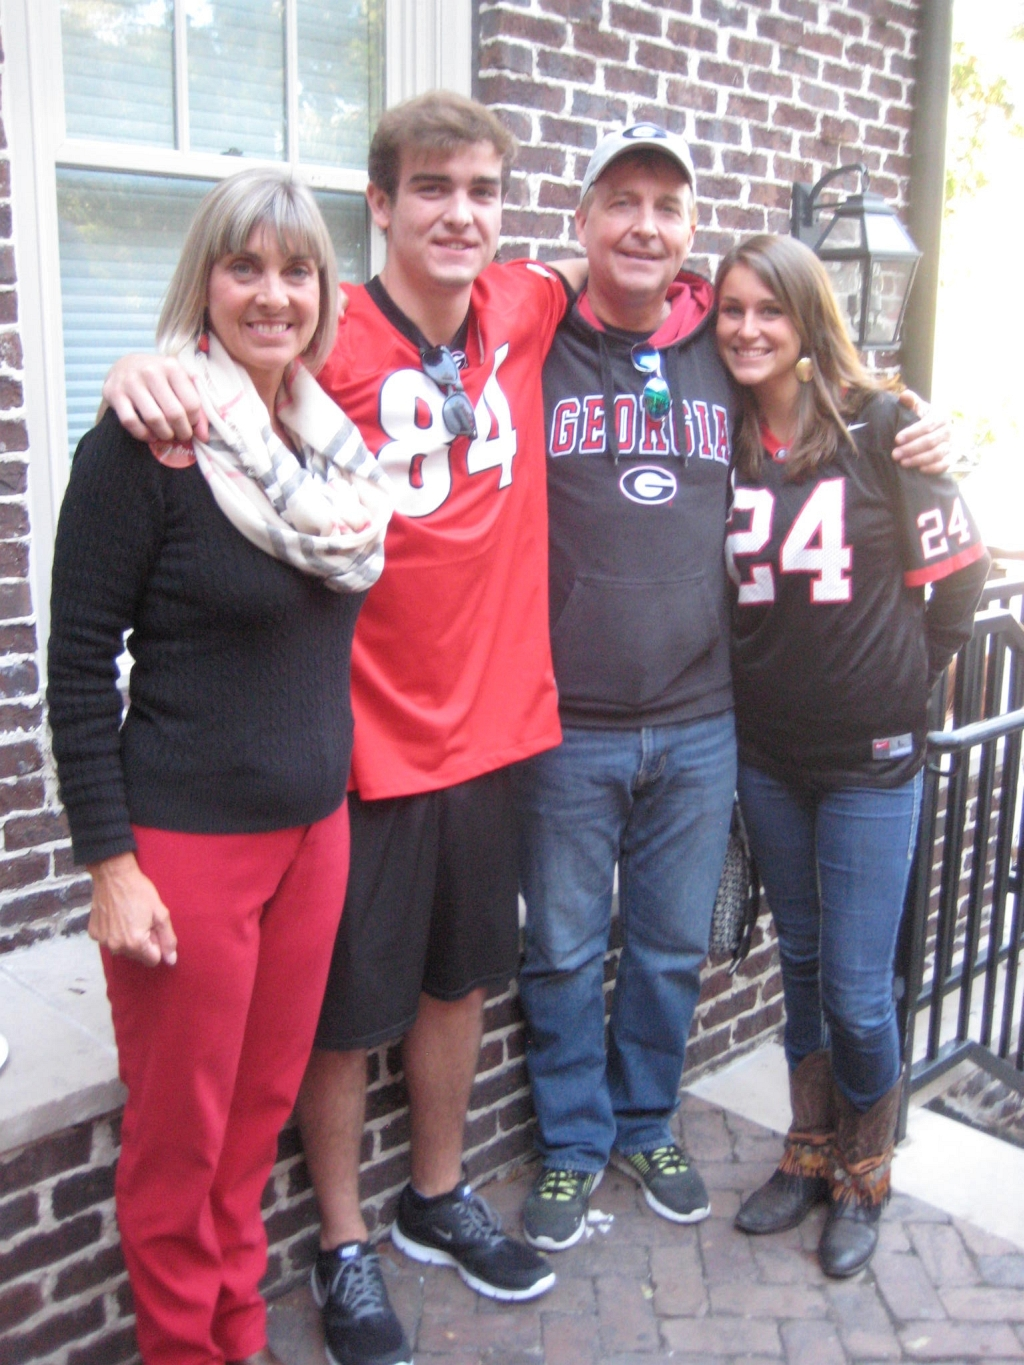 Lauriel, Jack, Arthur and Diana Marchesini - Mizzou vs. UGA - 17-Oct-2015 (Photo by Bulldawg Illustrated's Cheri and Vance Leavy)